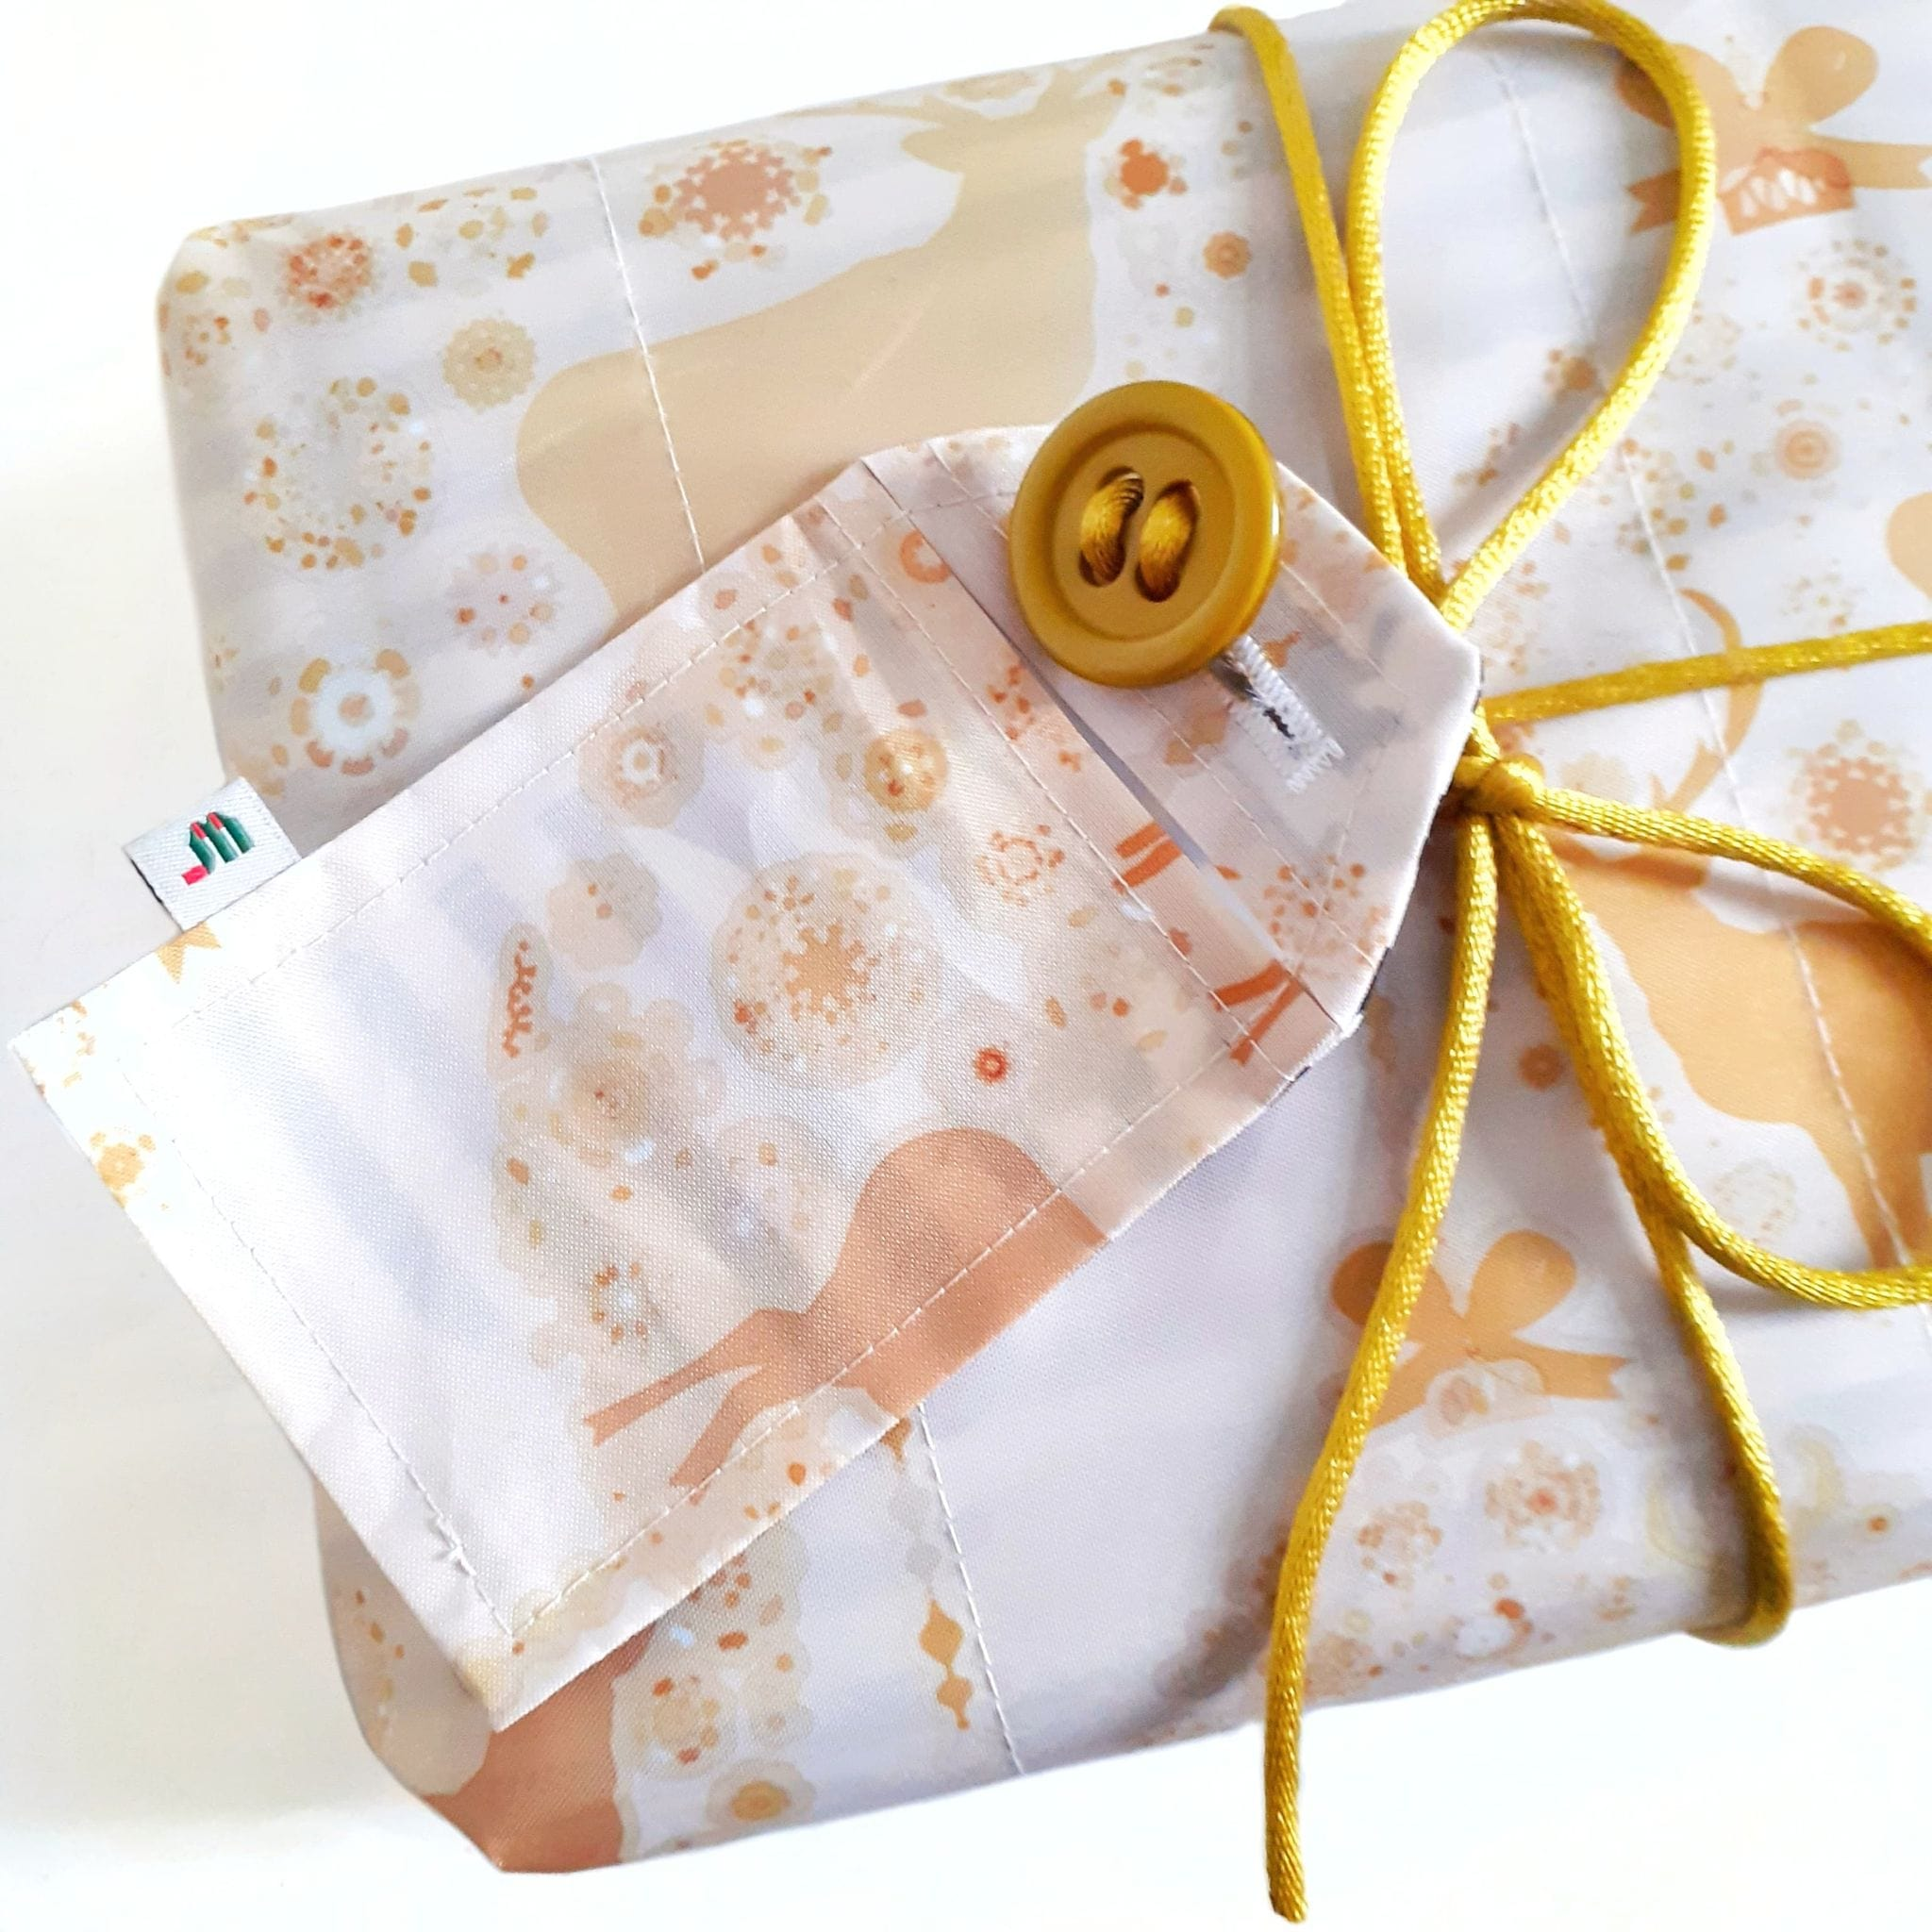 Earth Friendly Reusable Wrapping Paper - Sustainer Container